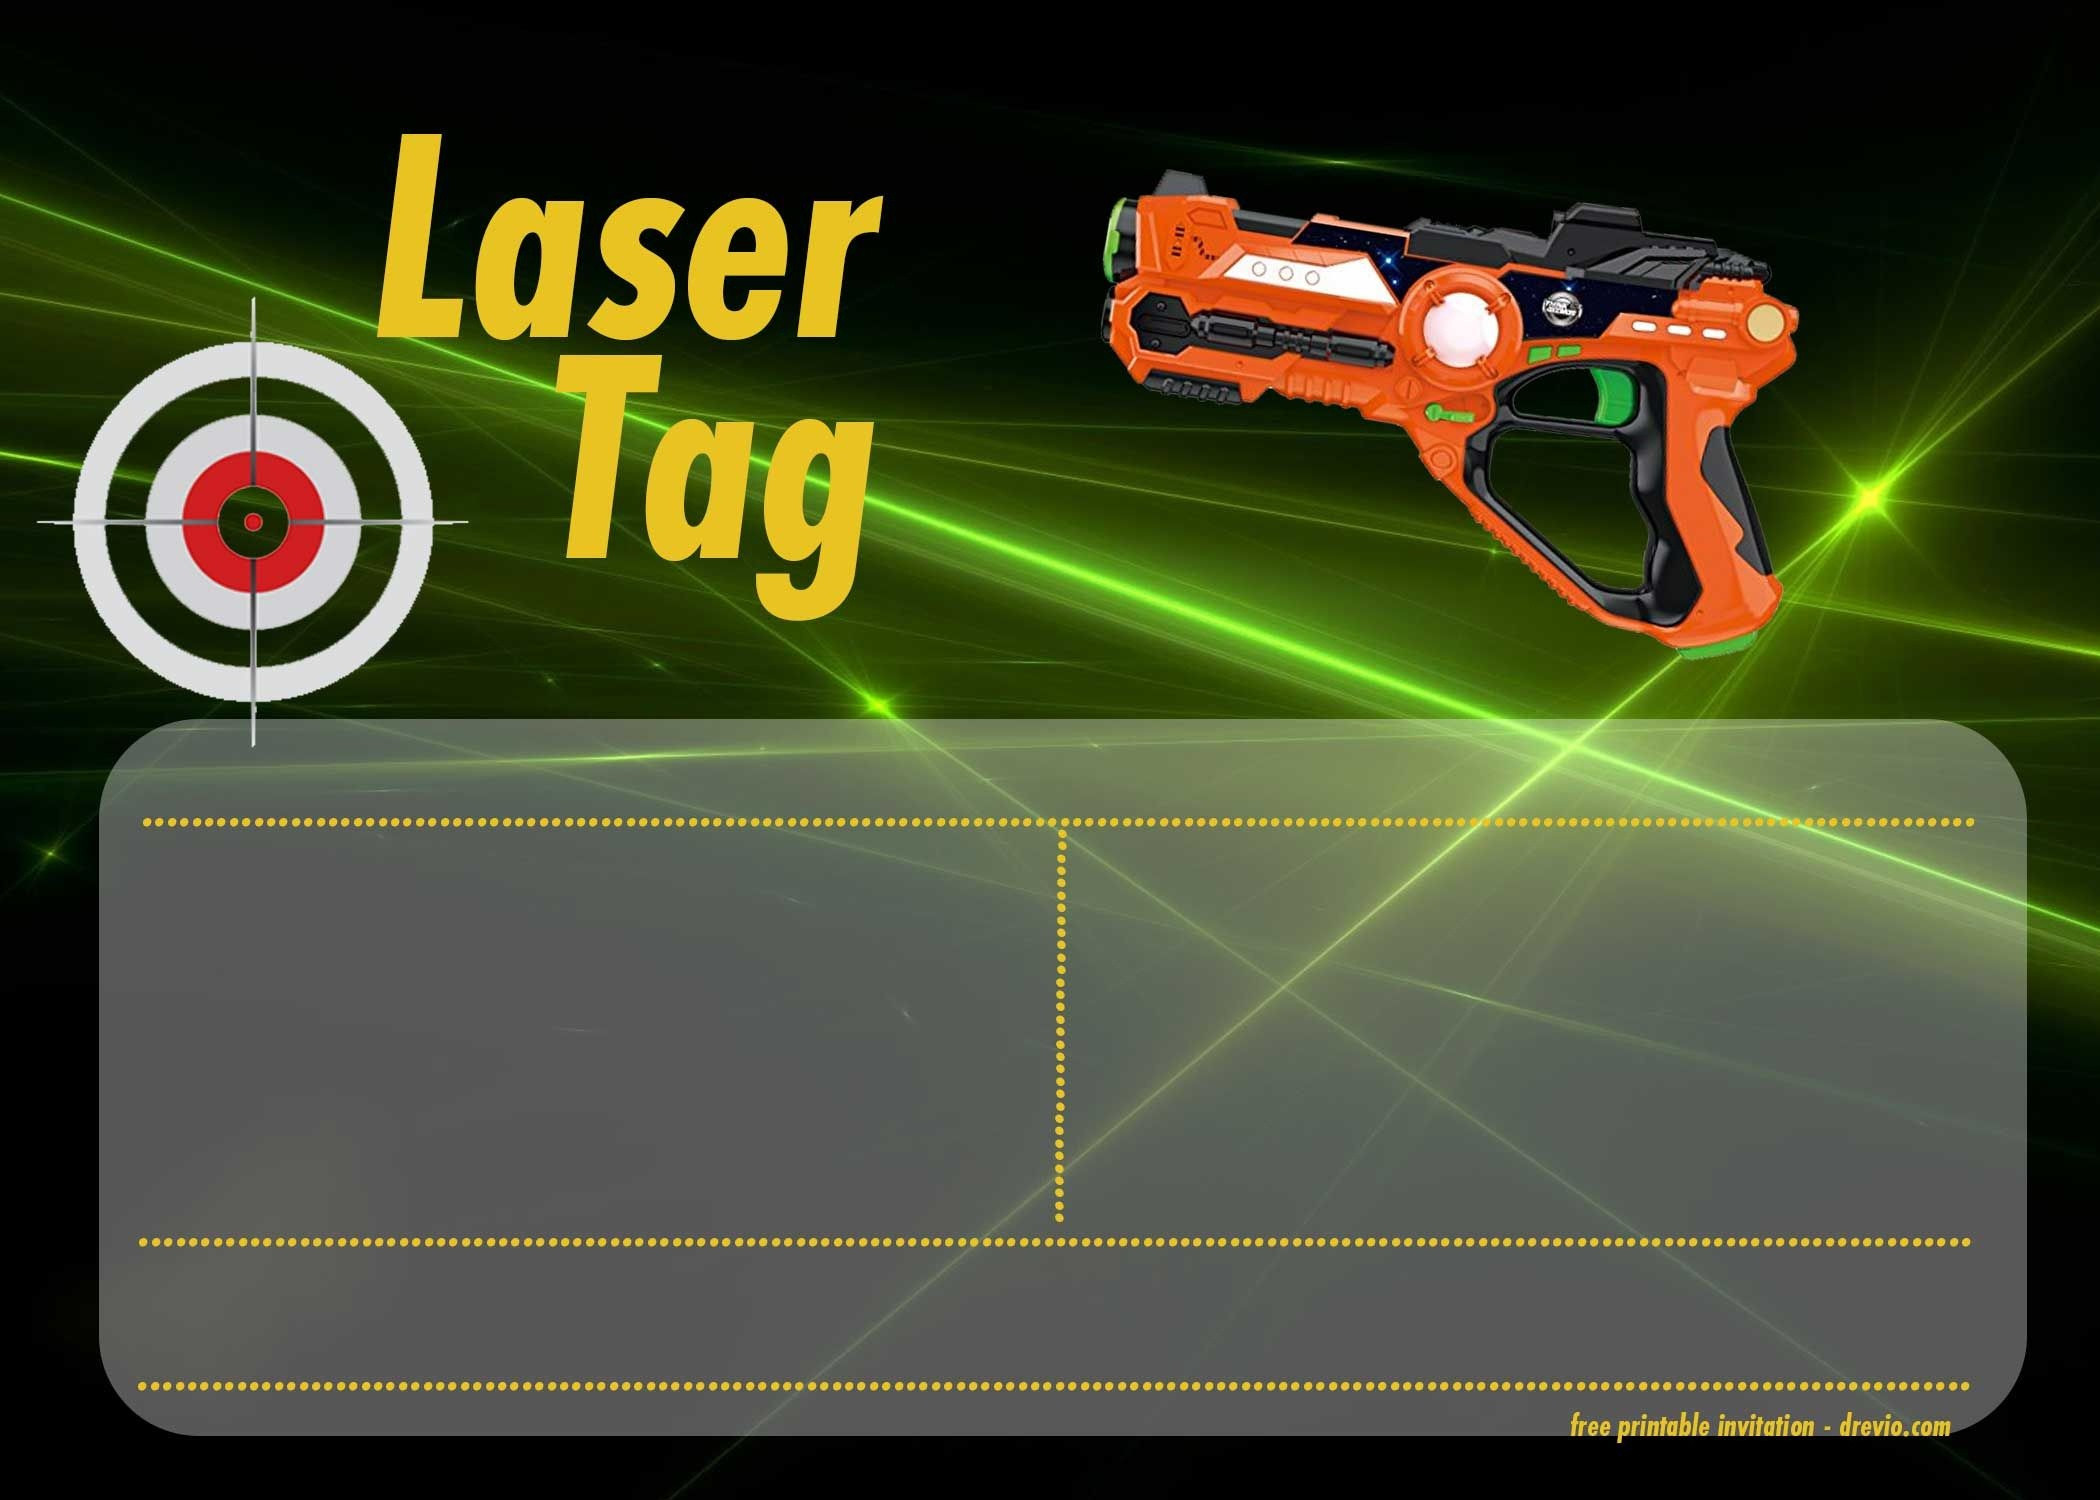 Free Printable Laser Tag Invitation Templates | Free Printable - Free Printable Laser Tag Invitation Template